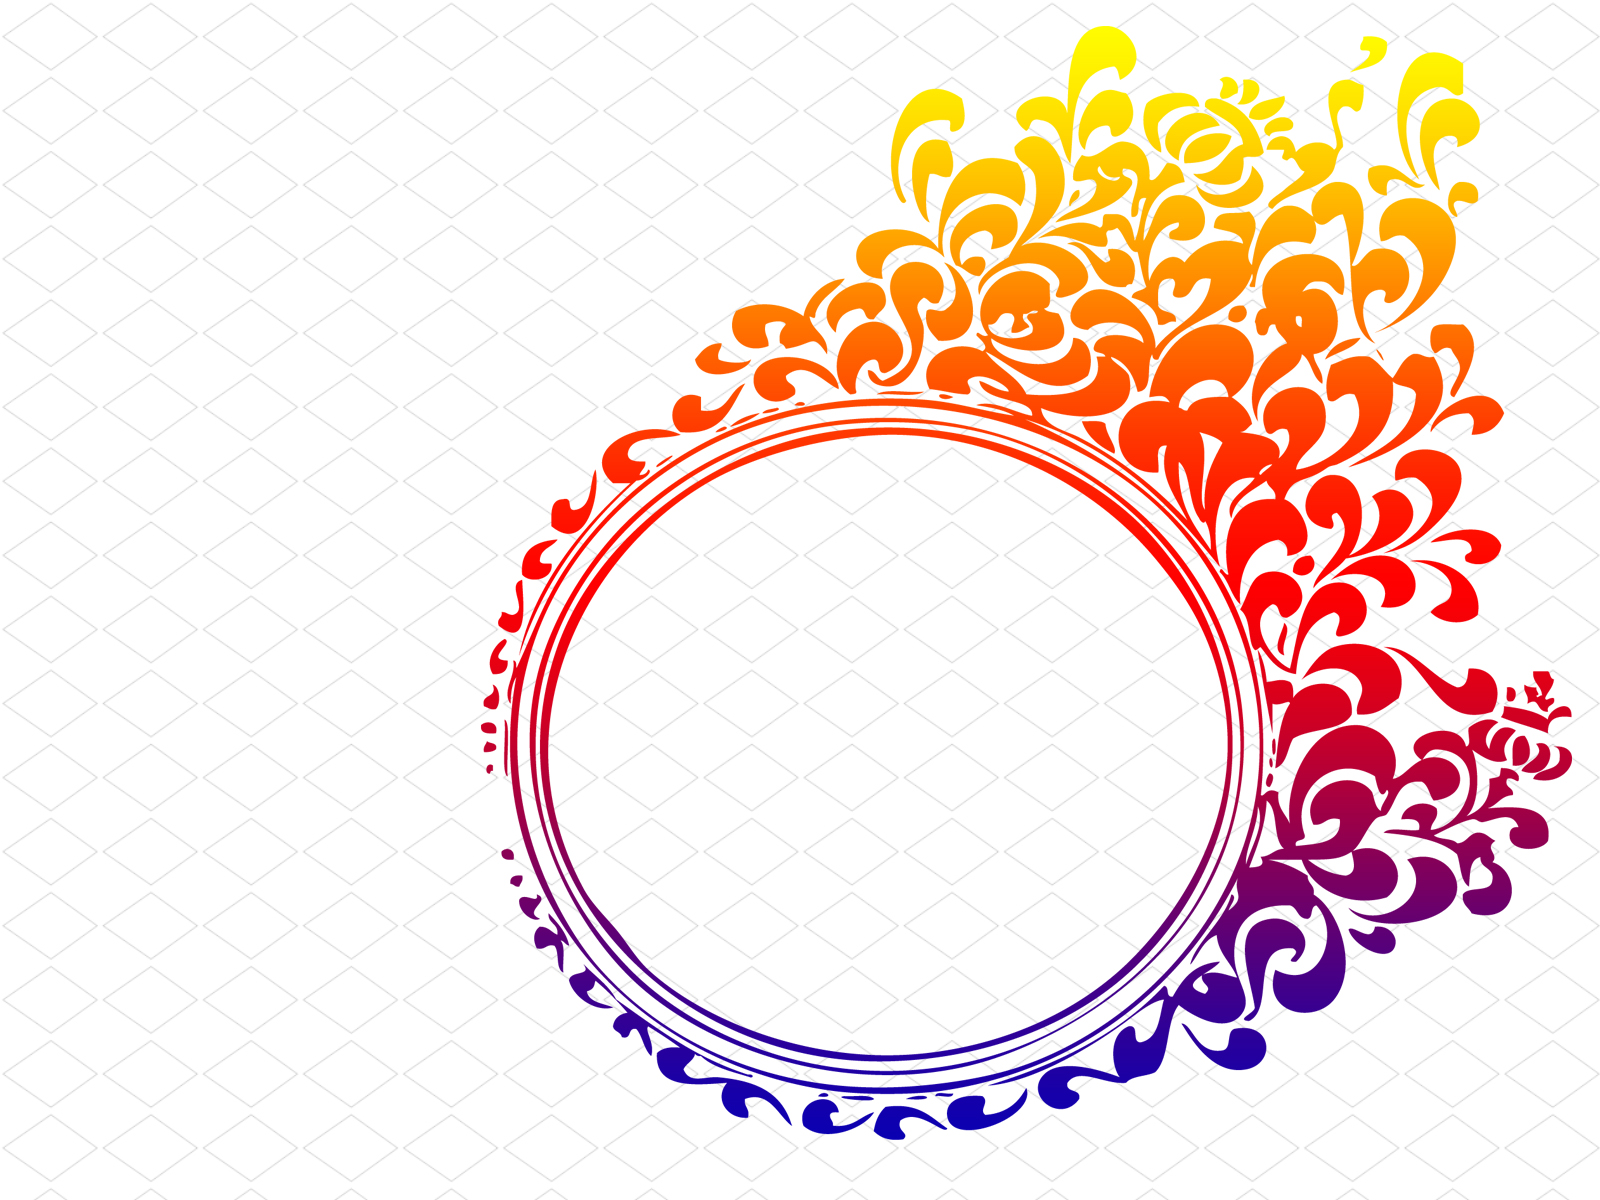 Blue Circle Flame Border Backgrounds